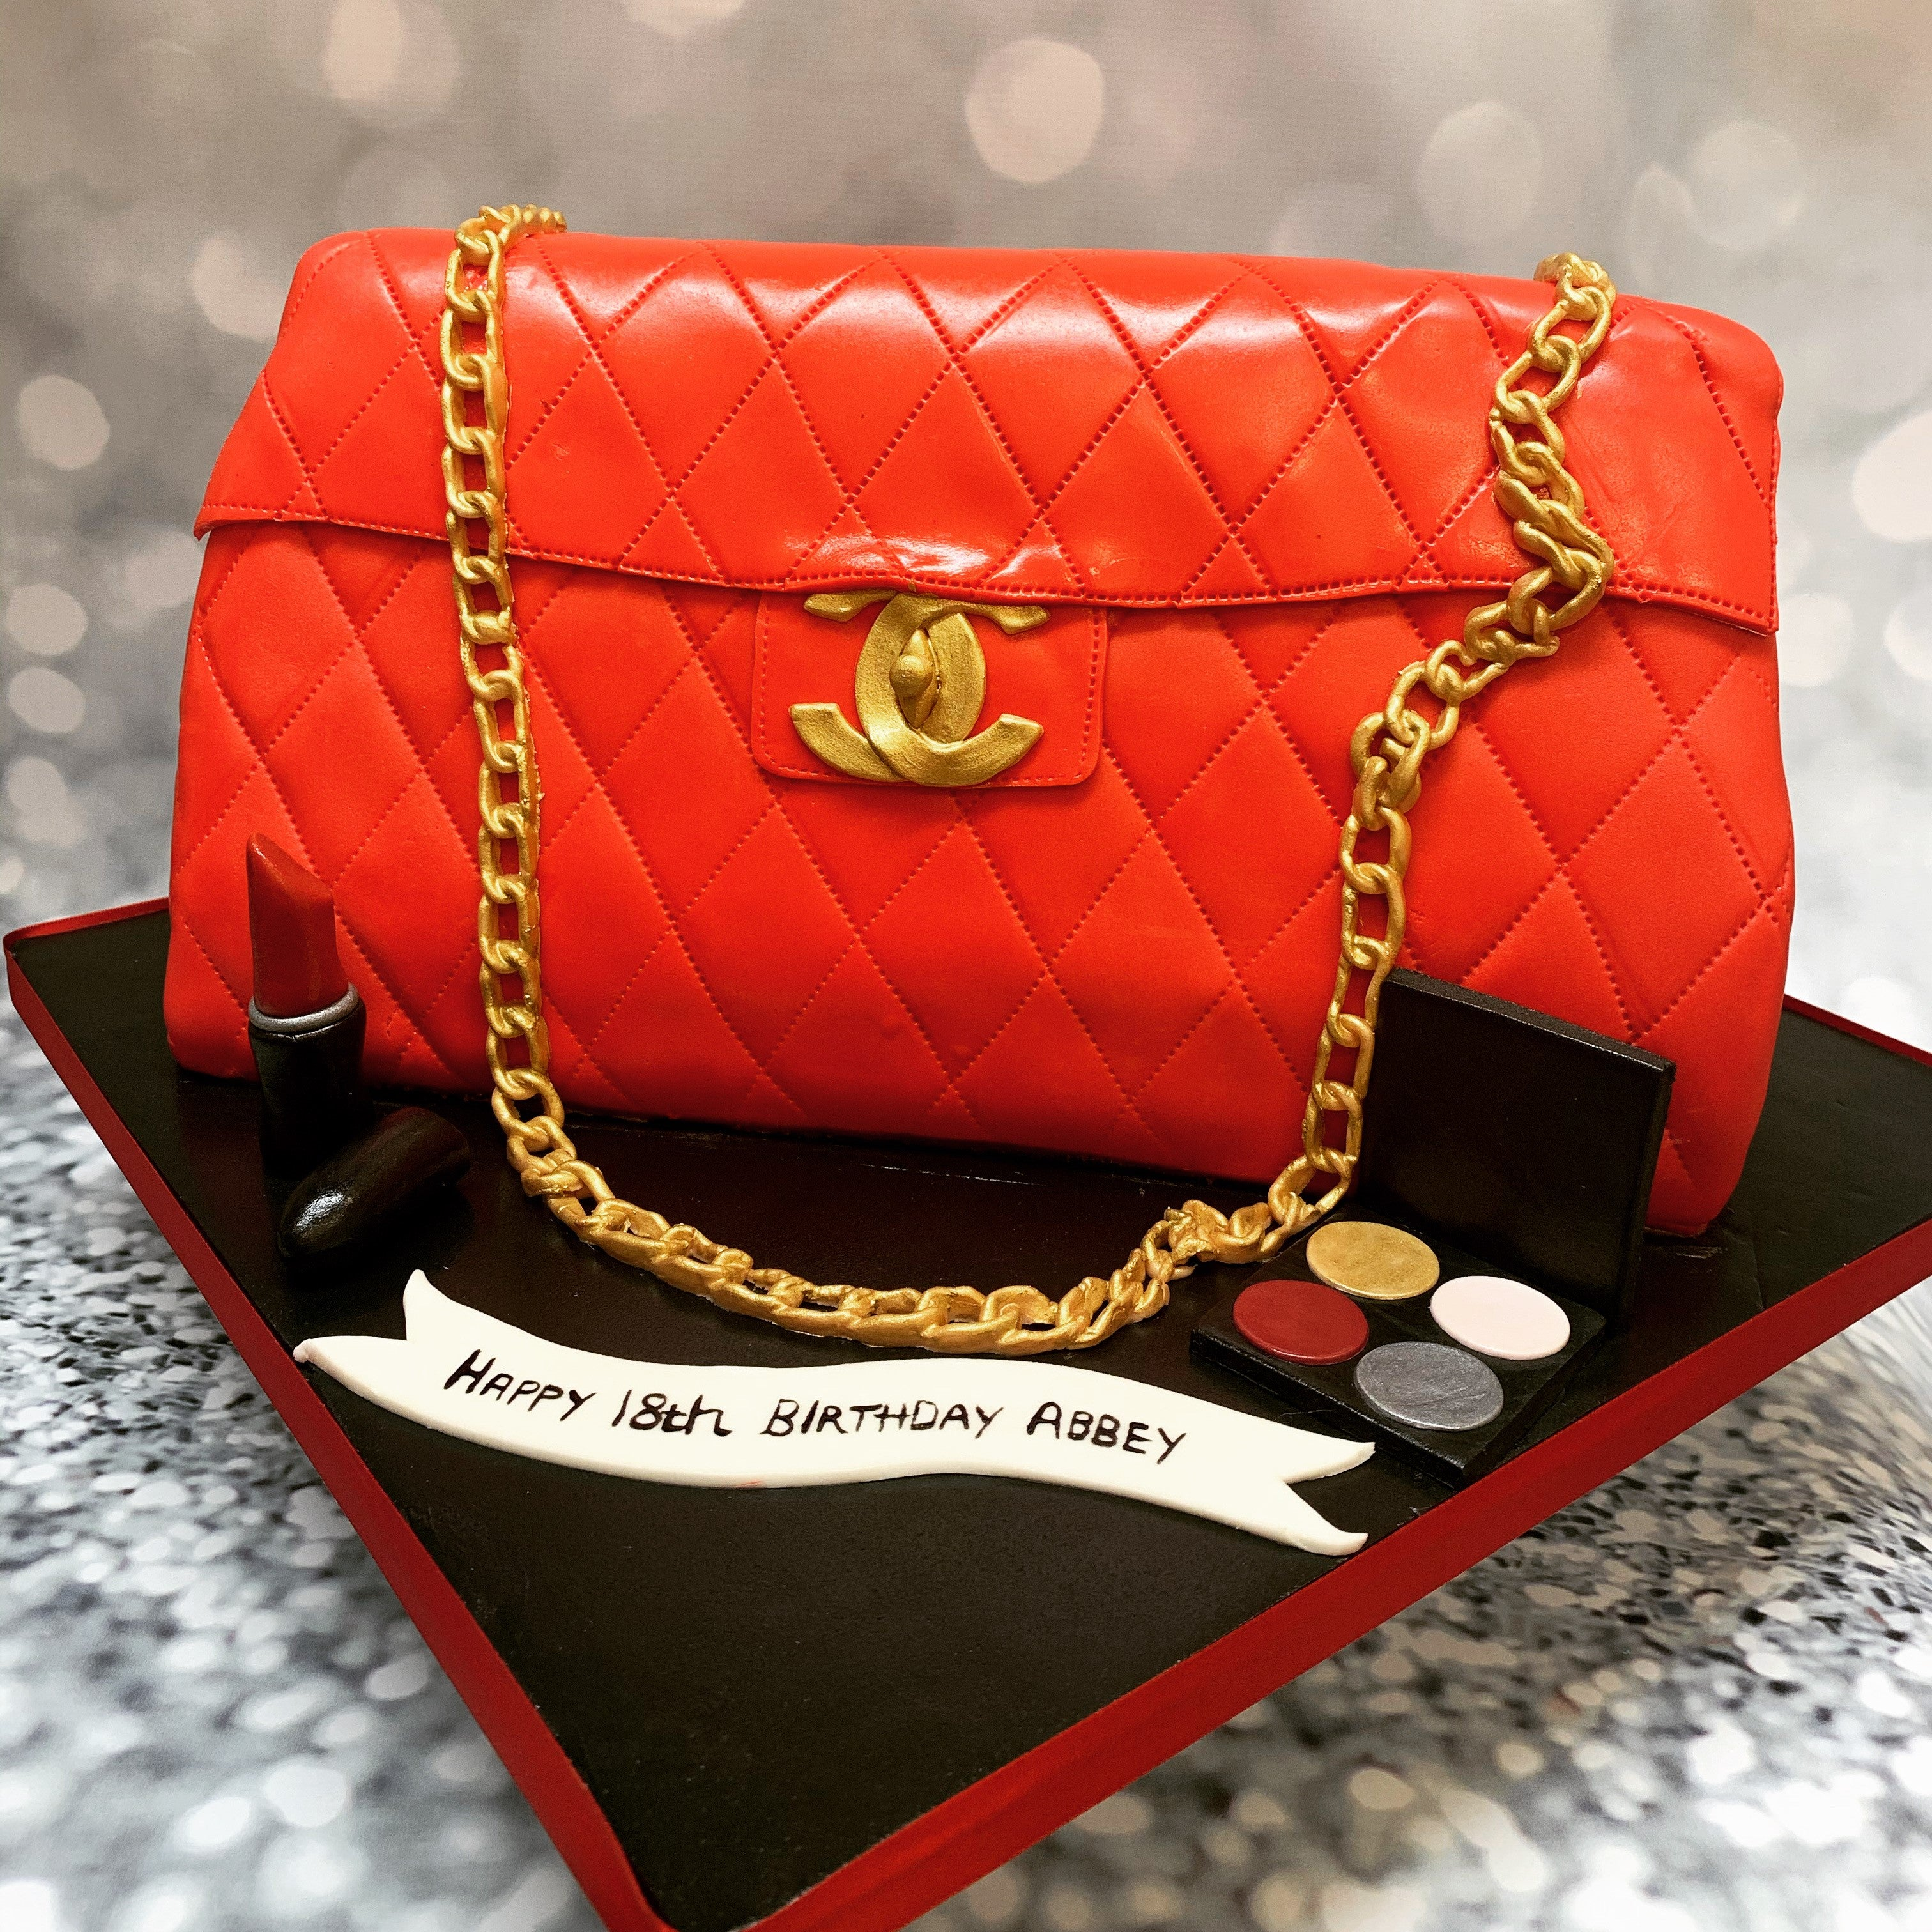 Red Quilted Handbag Cake